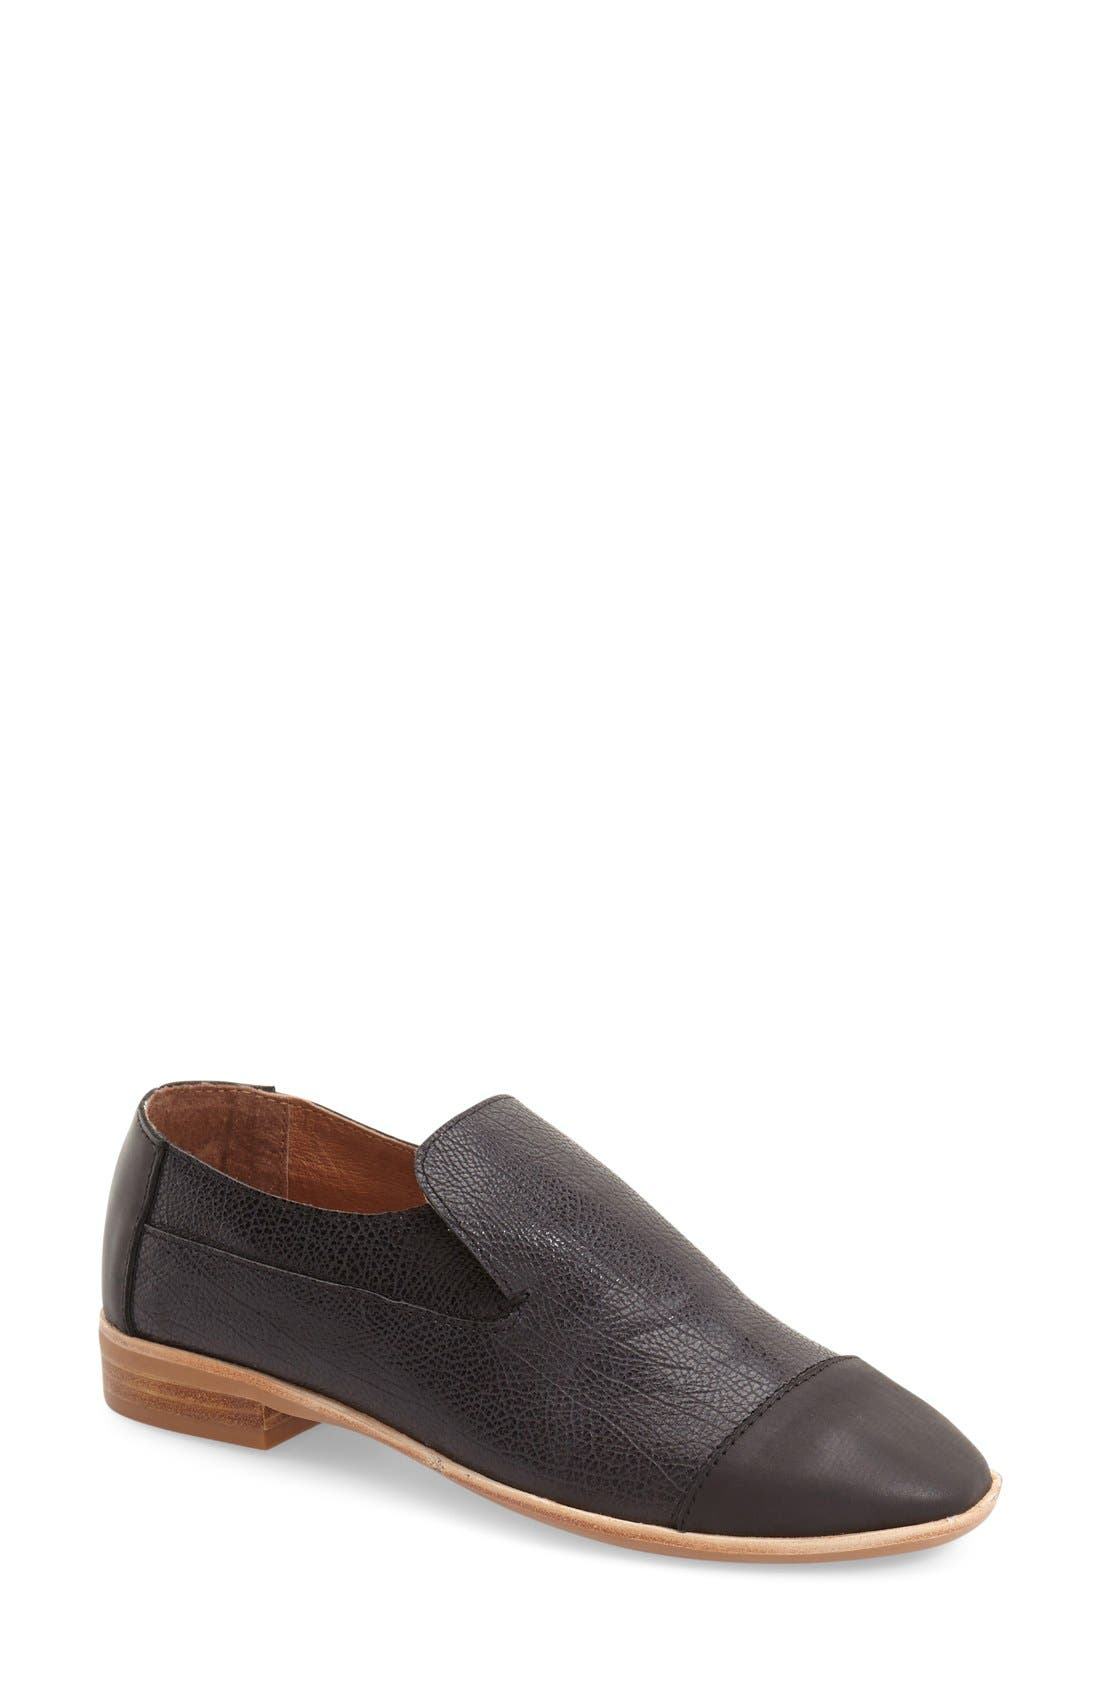 Jeffrey Campbell 'Barkley 2' Cap Toe Loafer (Women)